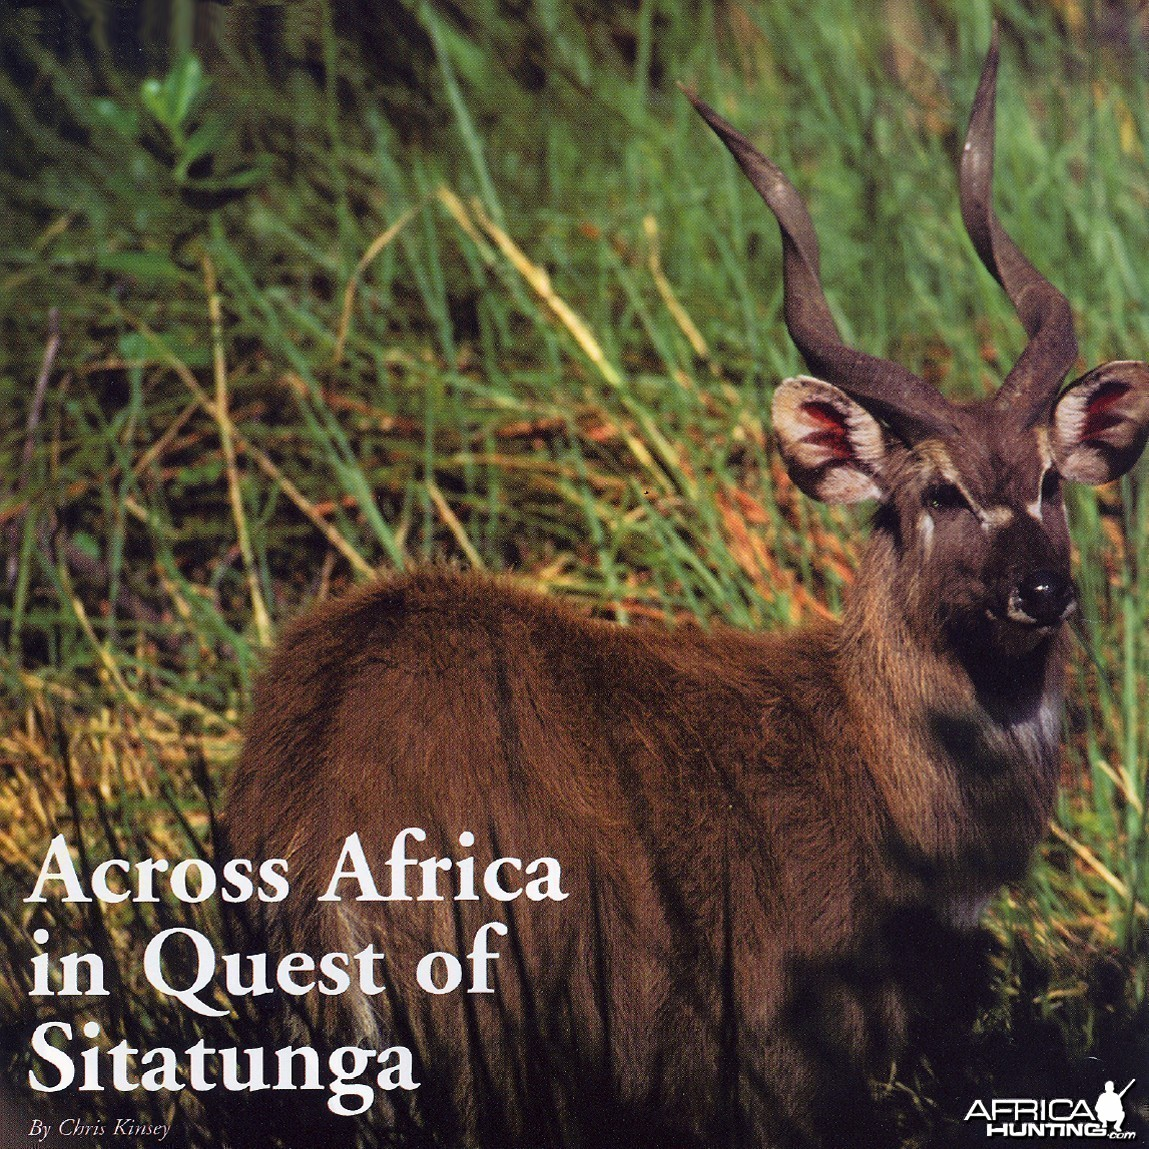 Across Africa in Quest of Sitatunga by Chris Kinsey